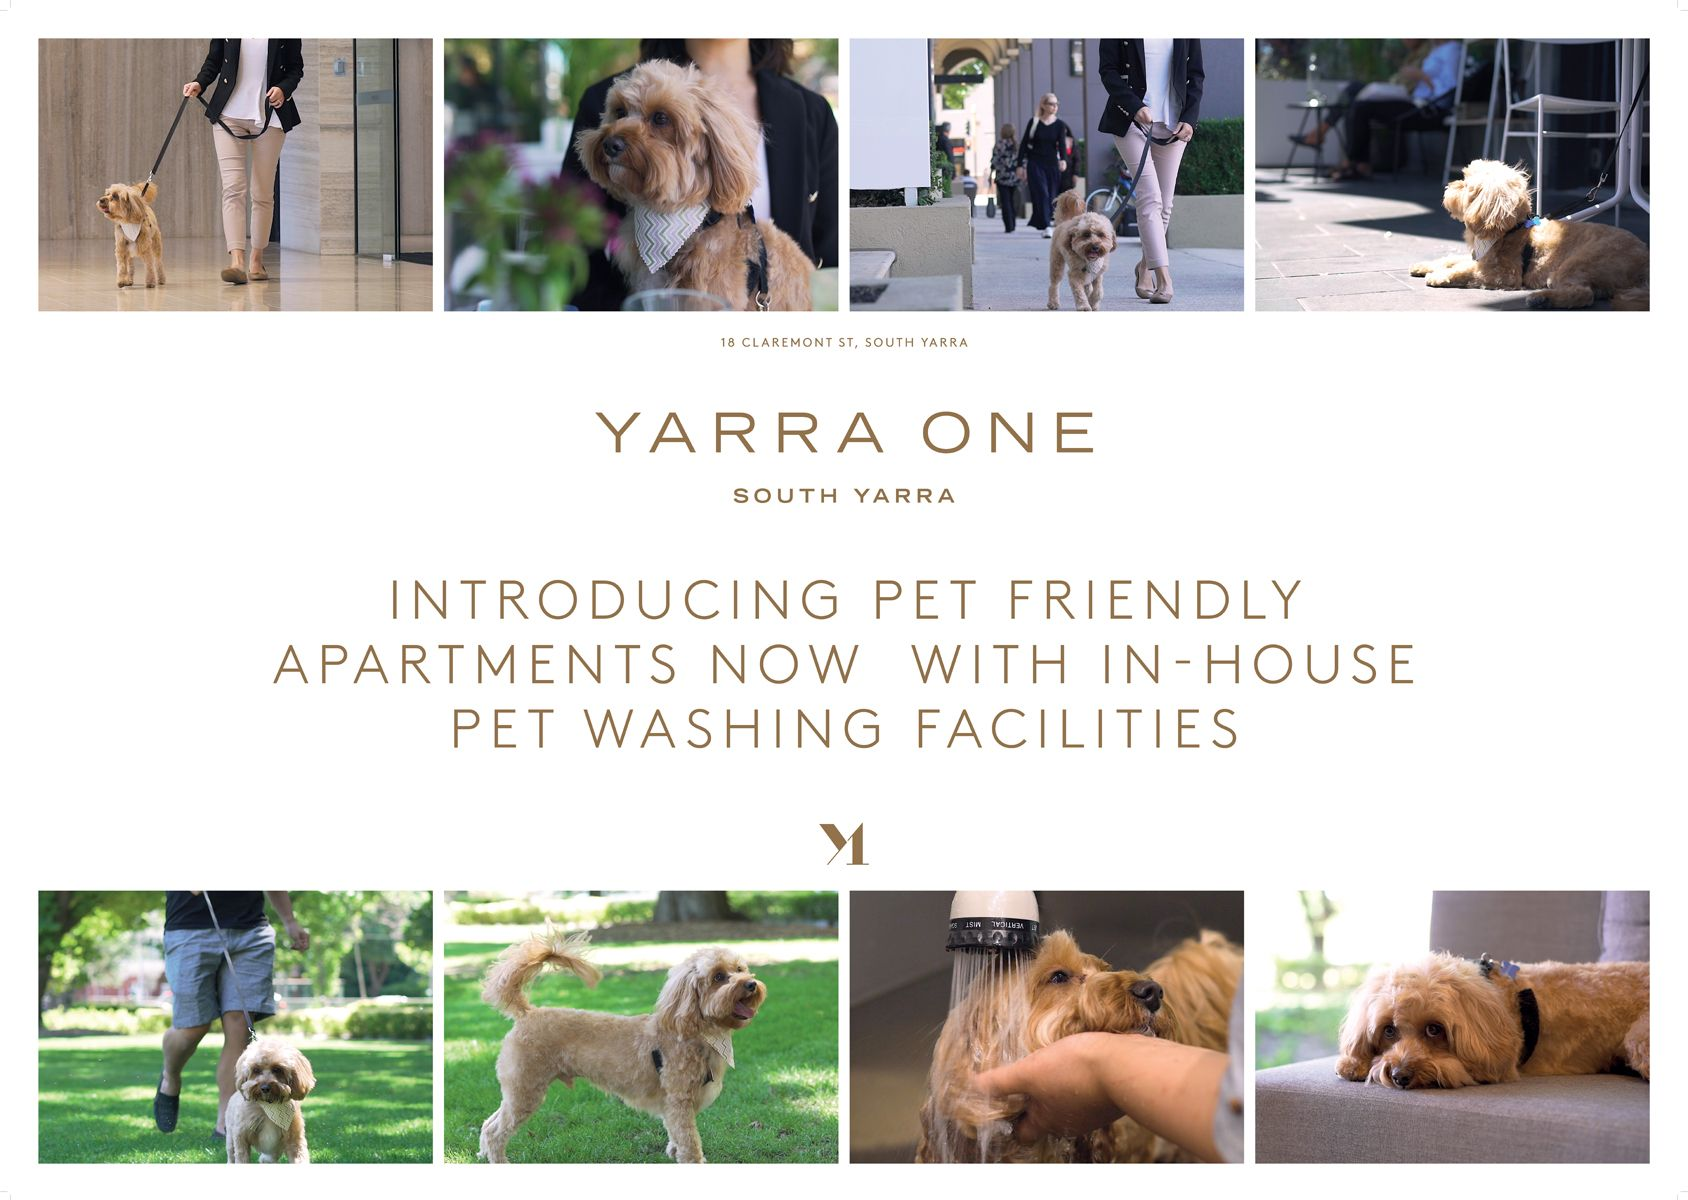 Yarra One Introducing Pet Friendly Apartments Now With In House